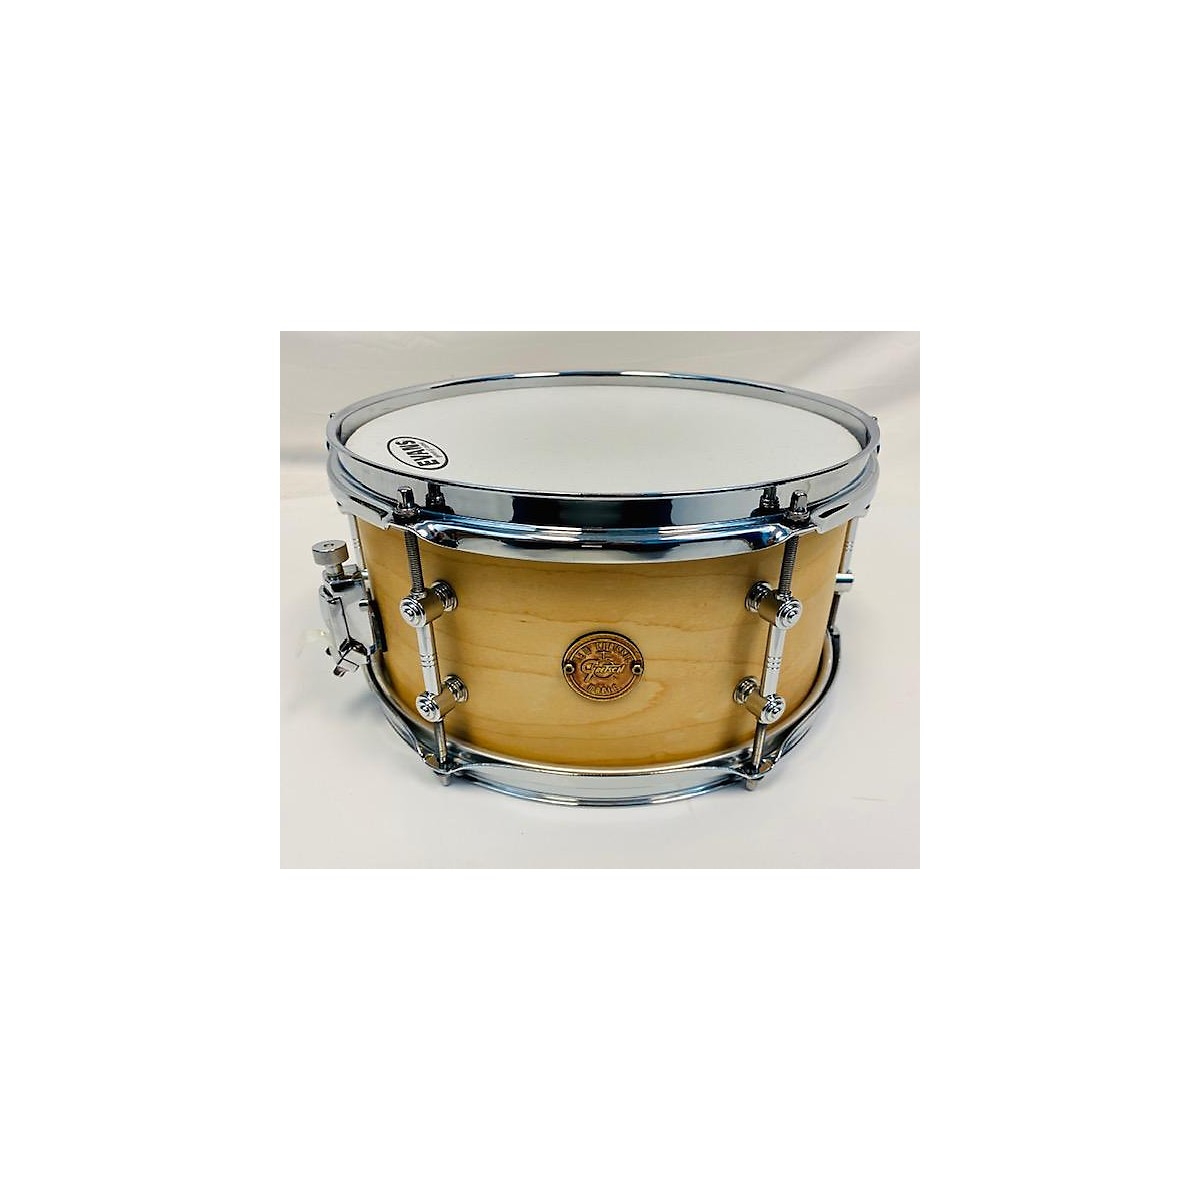 Gretsch Drums 5.5X12 New Classic Snare Drum